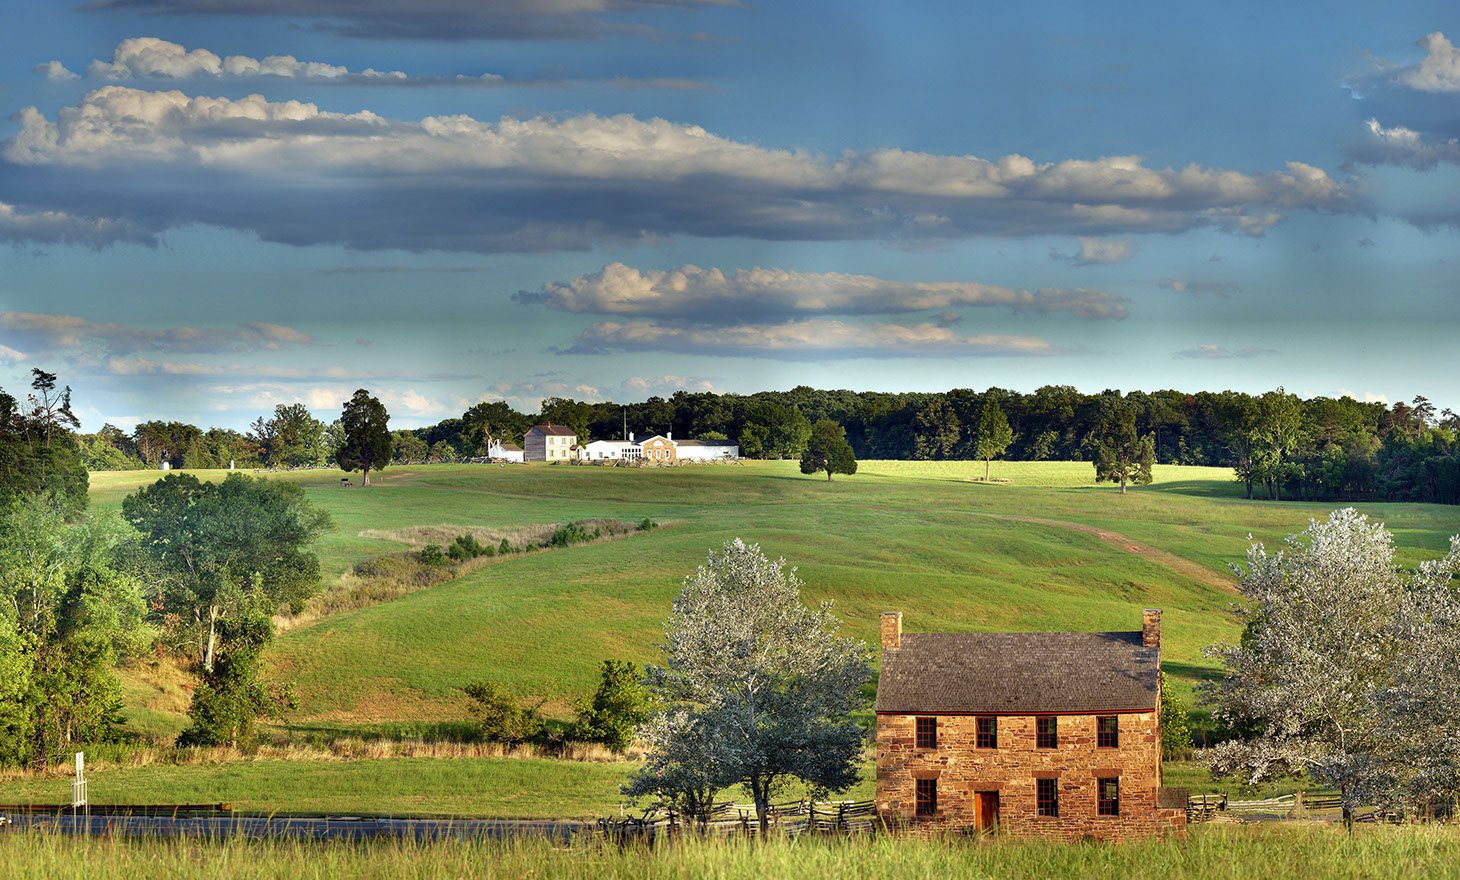 A picture of the Manassas Battlefield where the Union and the Confederacy met in the first major battle of the Civil War.